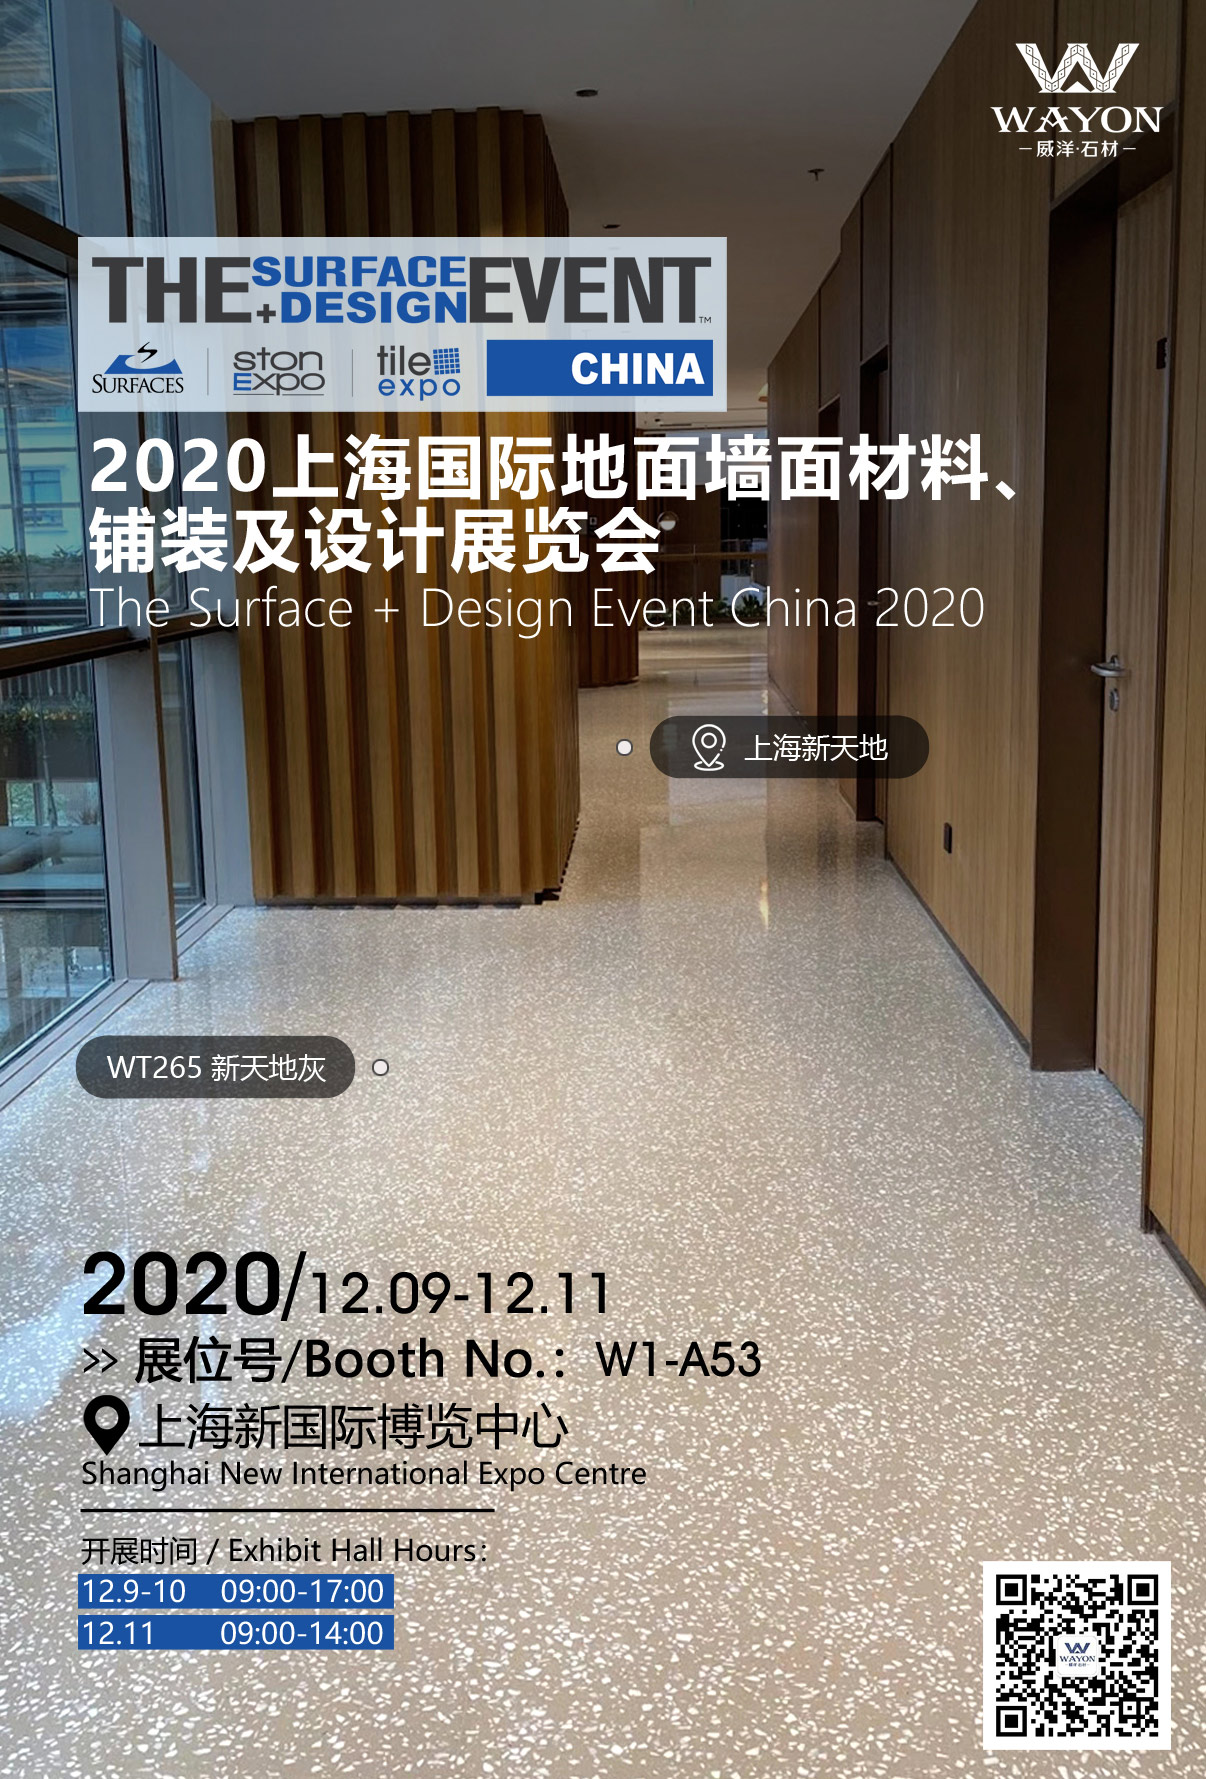 The Surface+Design Event China 2020